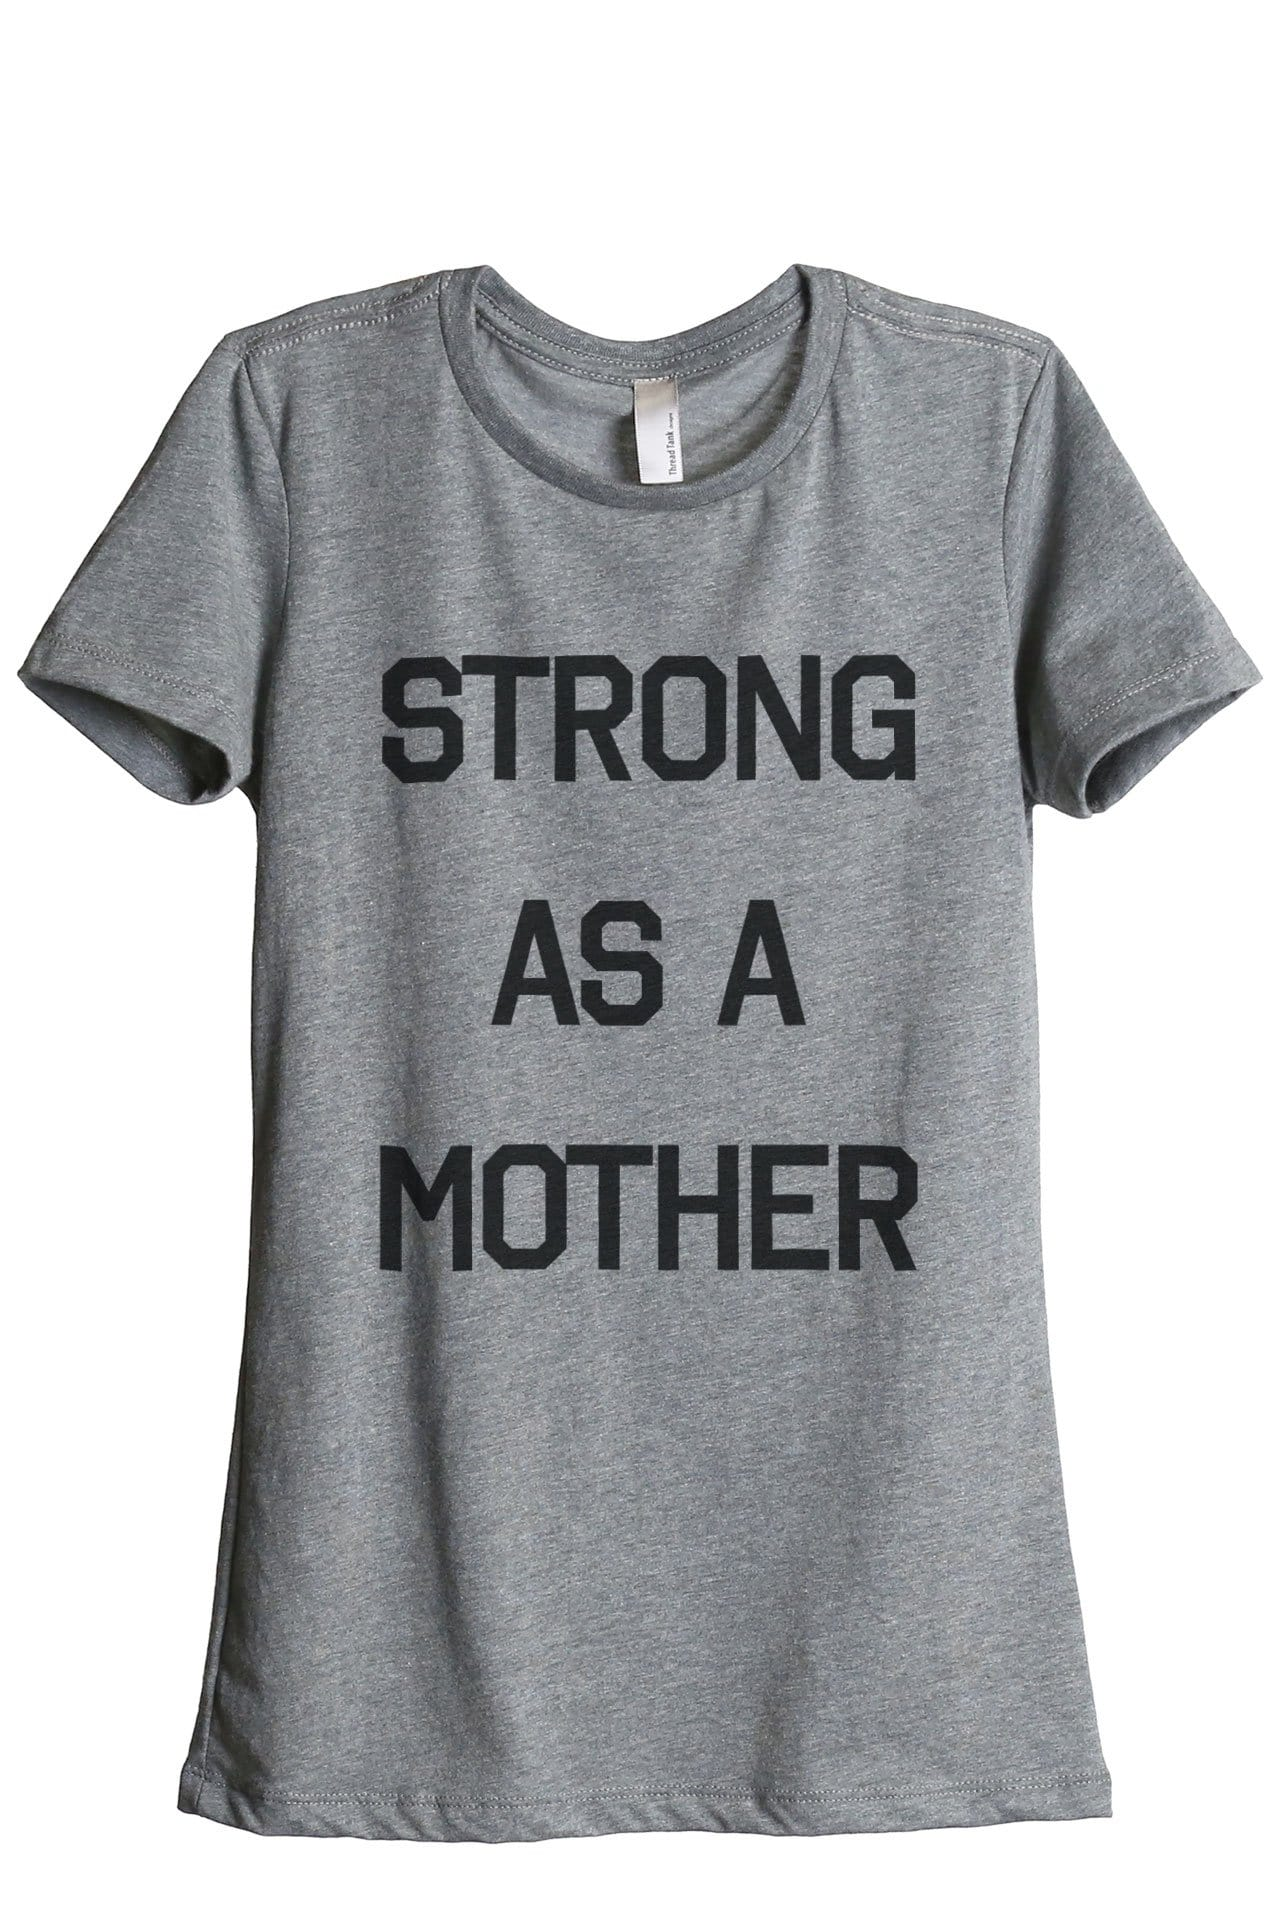 Strong As A Mother Women Heather Grey Relaxed Crew T-Shirt Tee Top